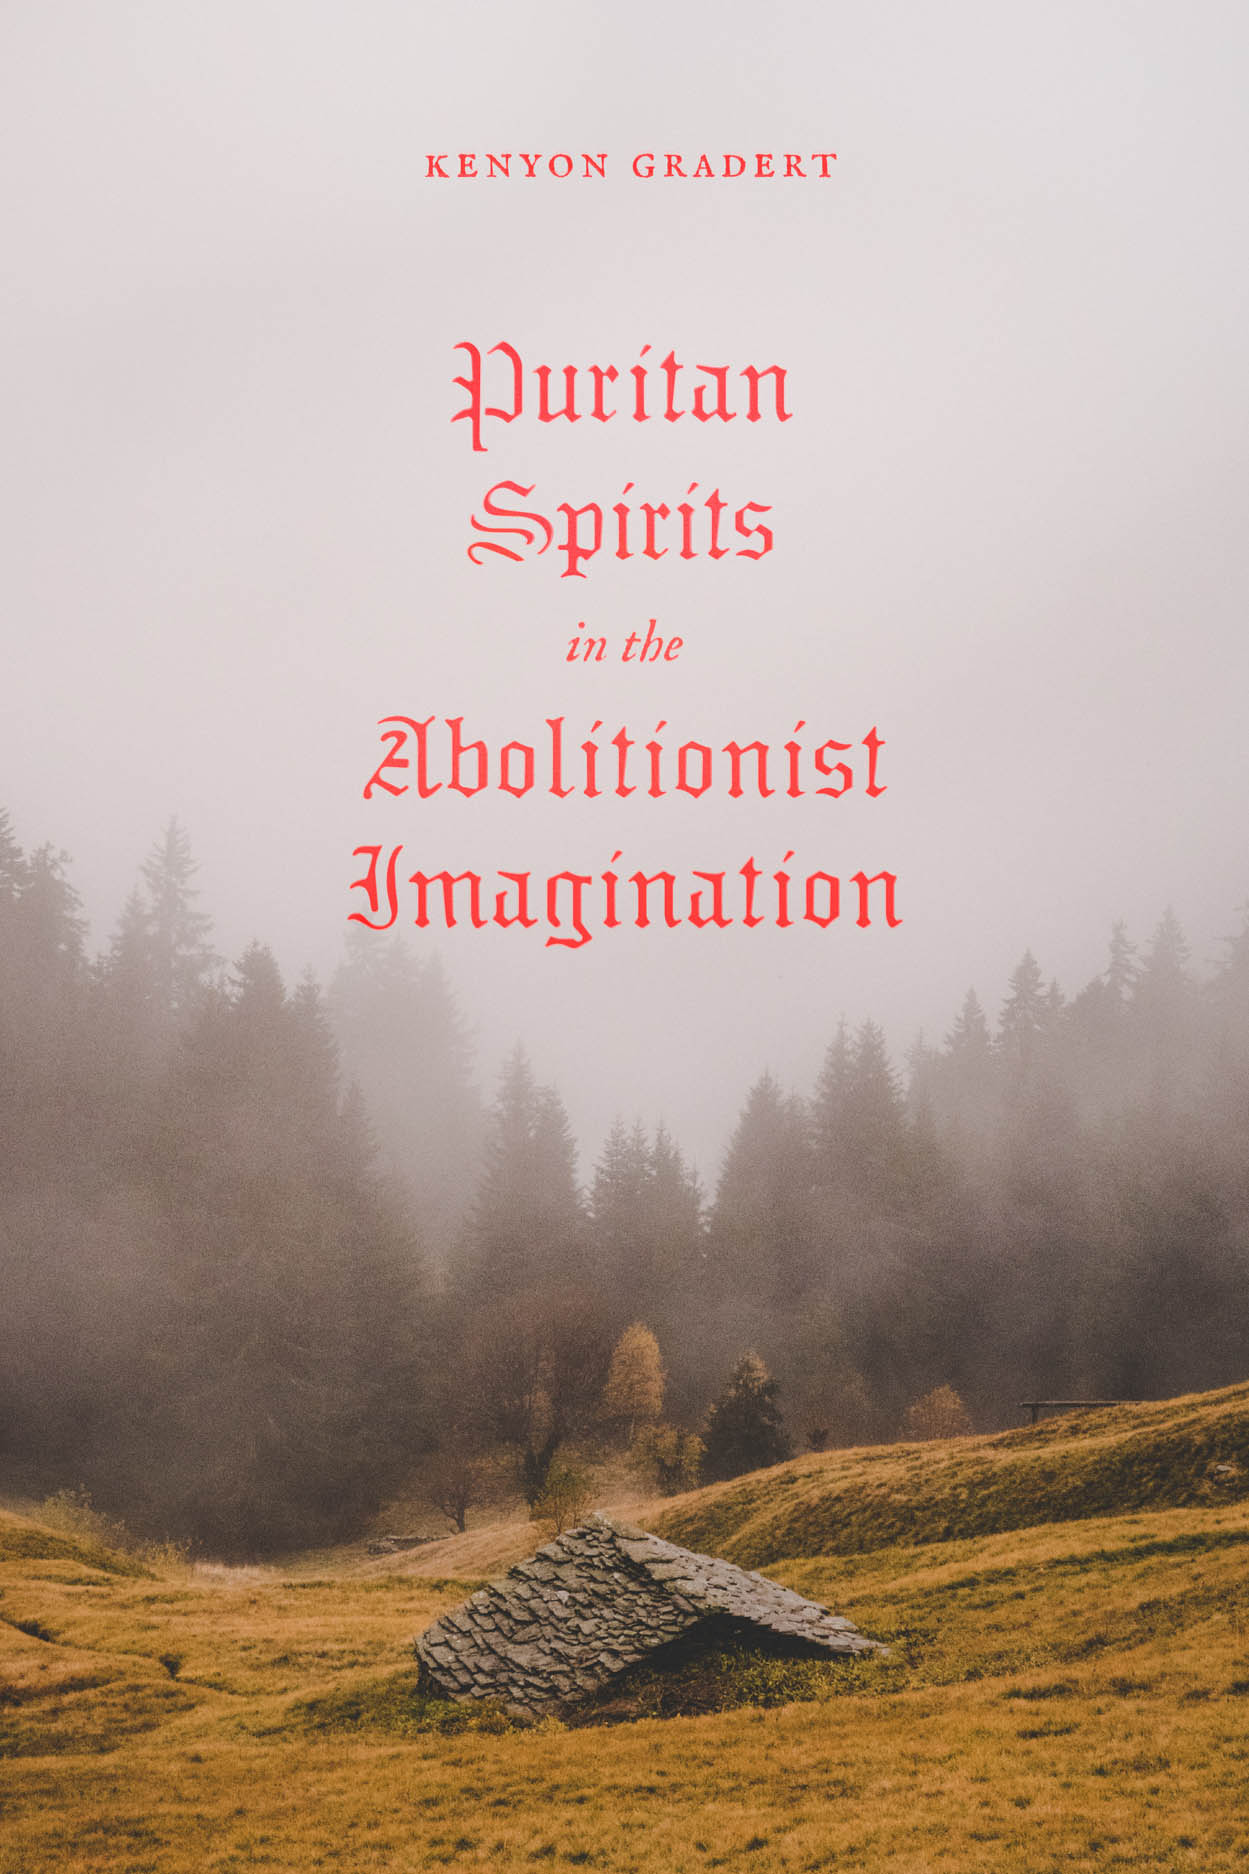 Puritan Spirits in the Abolitionist Imagination